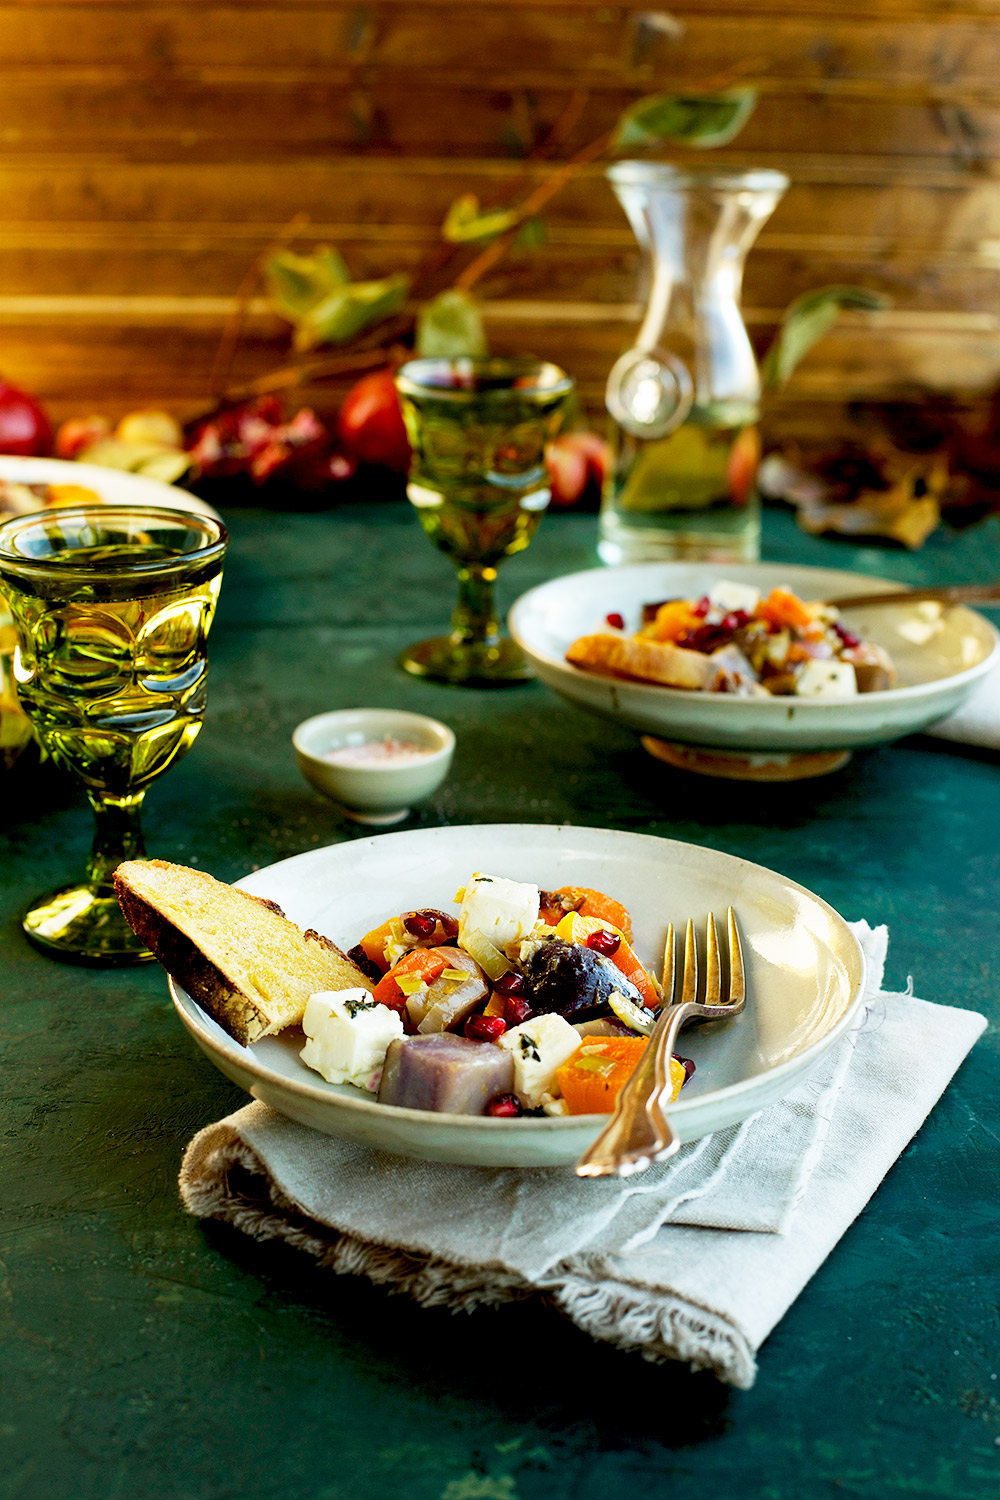 Wine Roasted Vegetables with Feta is a easy gluten-free side dish that is perfect for any time of the year!